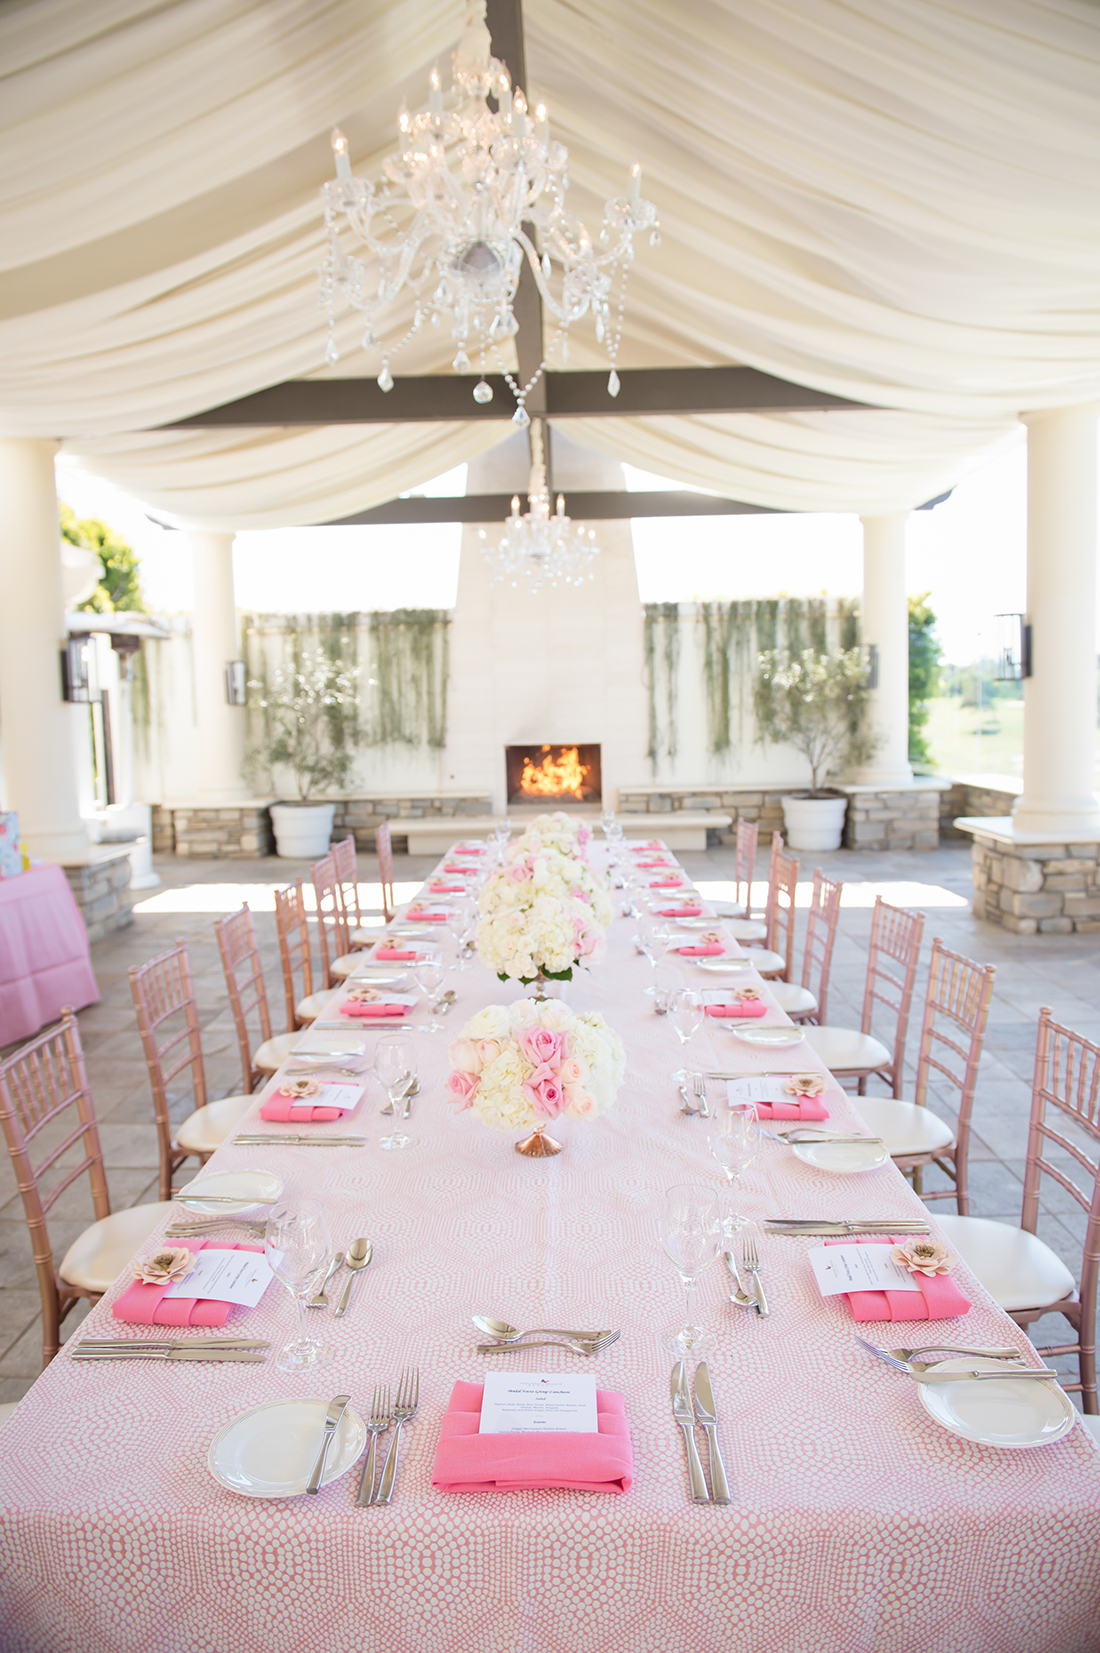 An image of the pastel pink dining table set up for the Something Lovely event